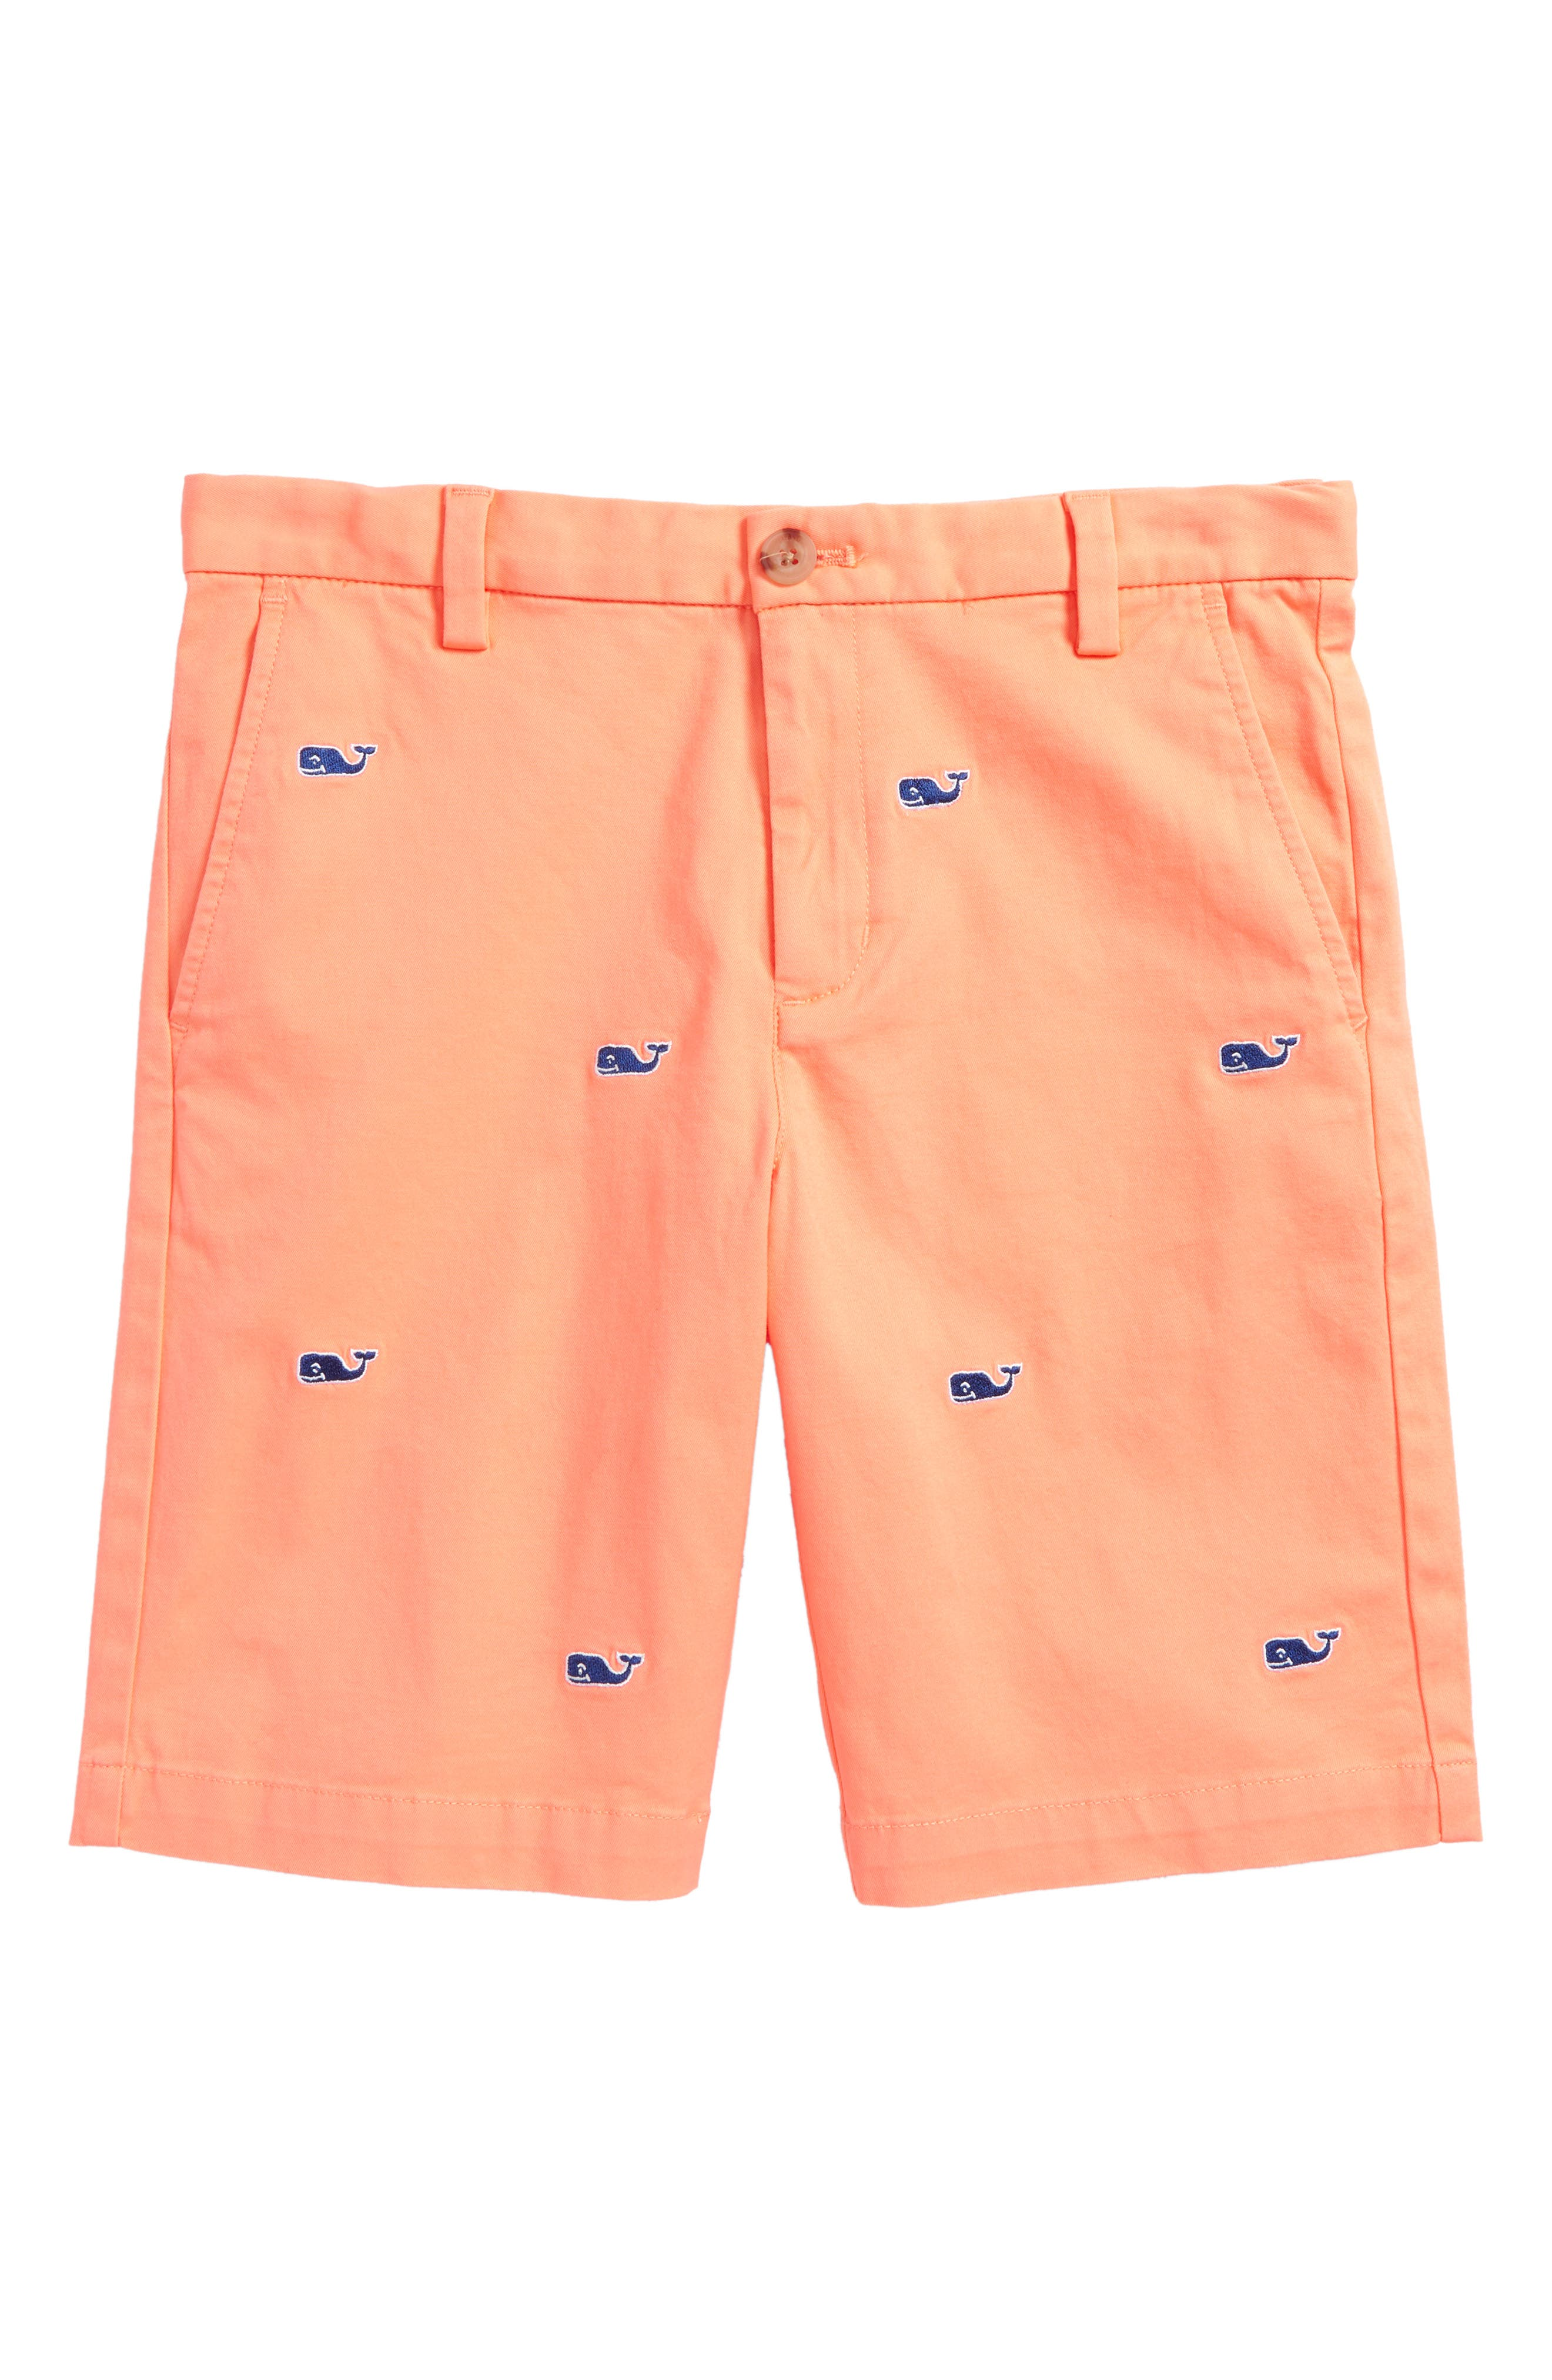 Stretch Breaker Whale Embroidered Shorts,                         Main,                         color,